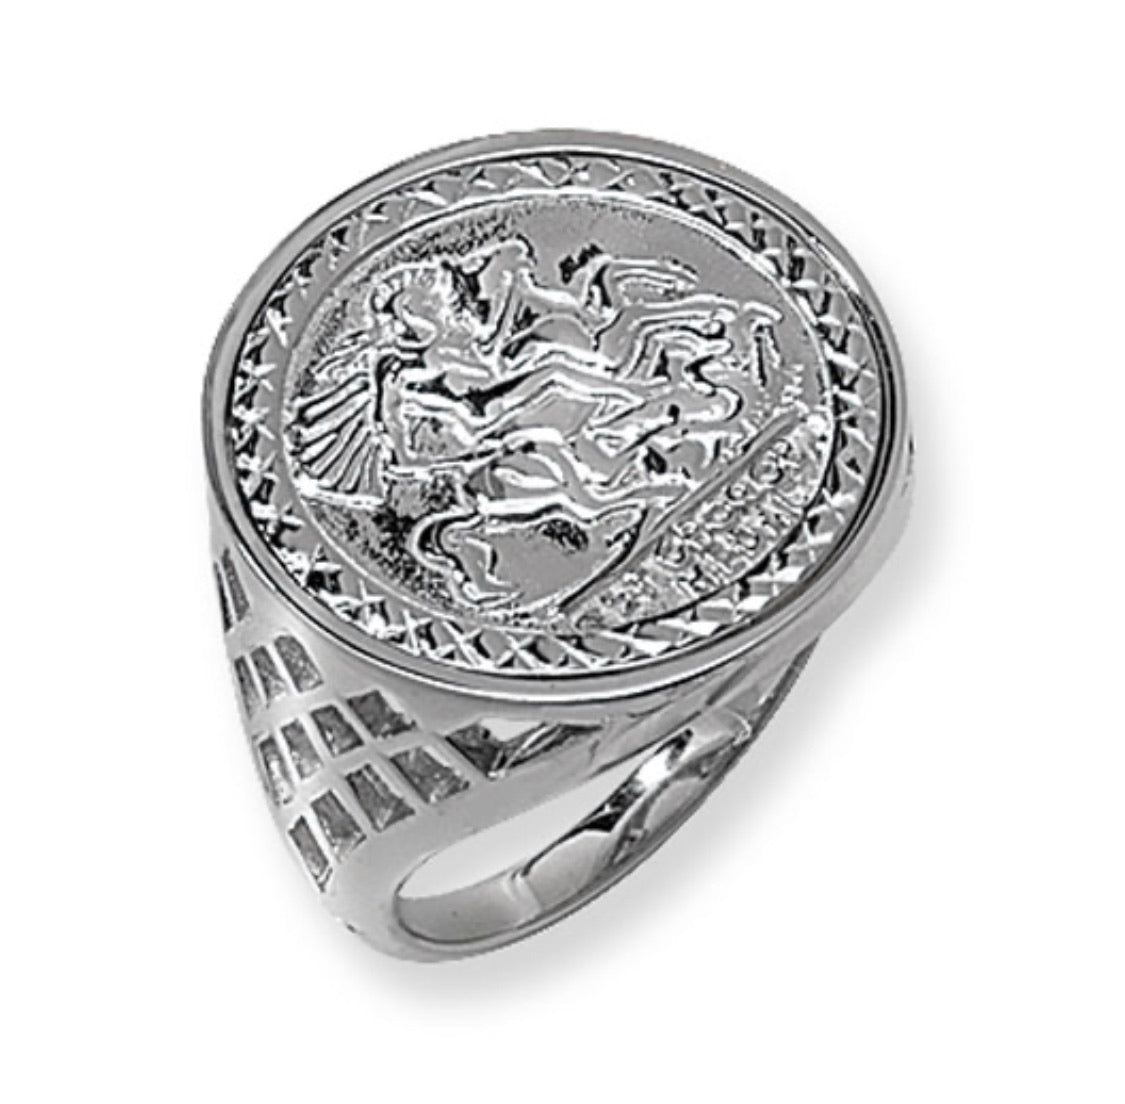 St George basket cage silver coin ring